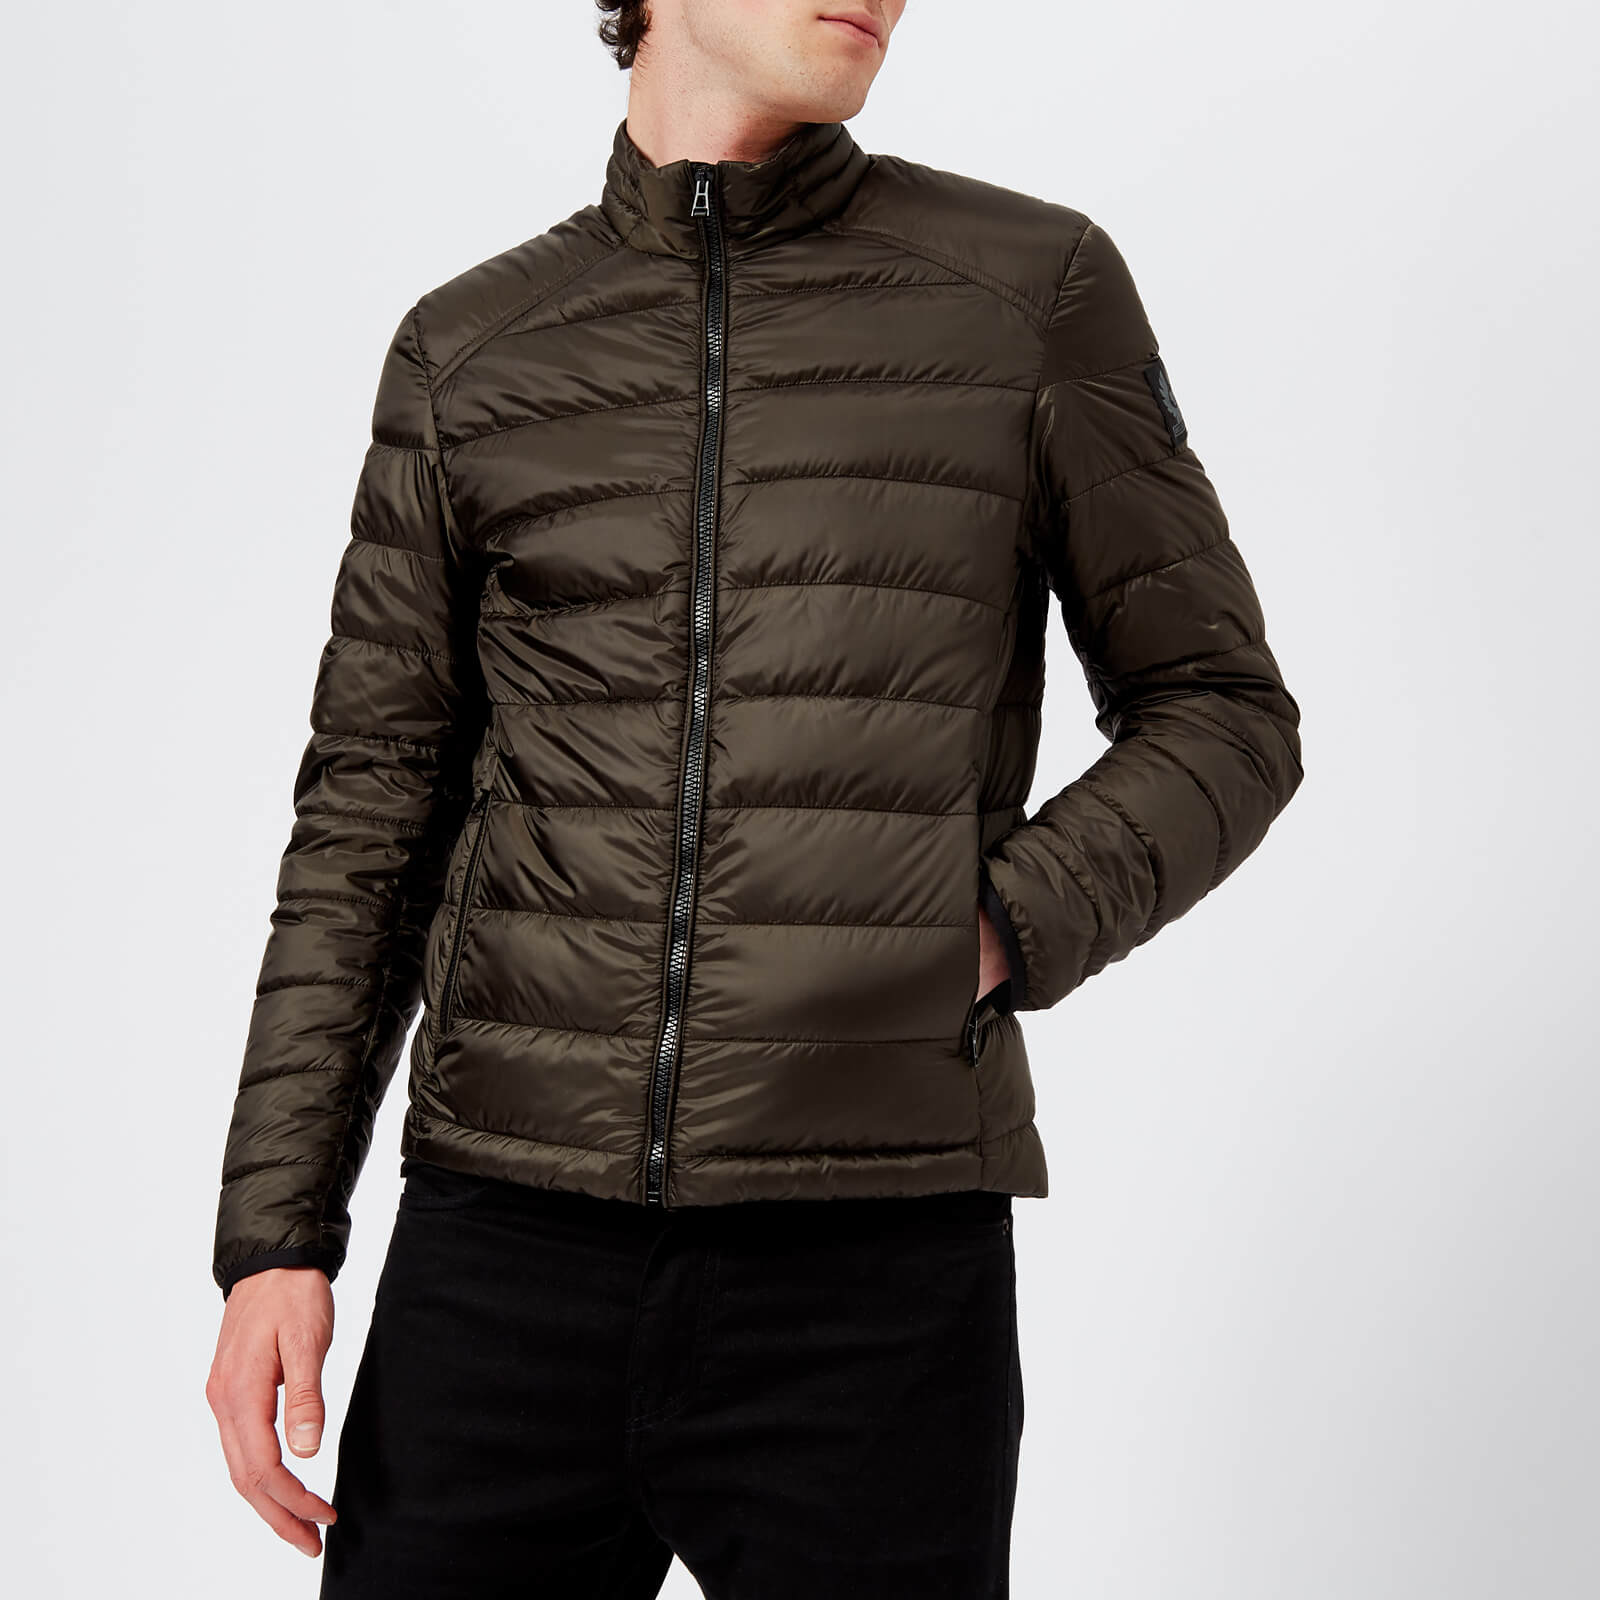 9e59b1912ddb Belstaff Men s Ryegate Jacket - Rustic Moss - Free UK Delivery over £50